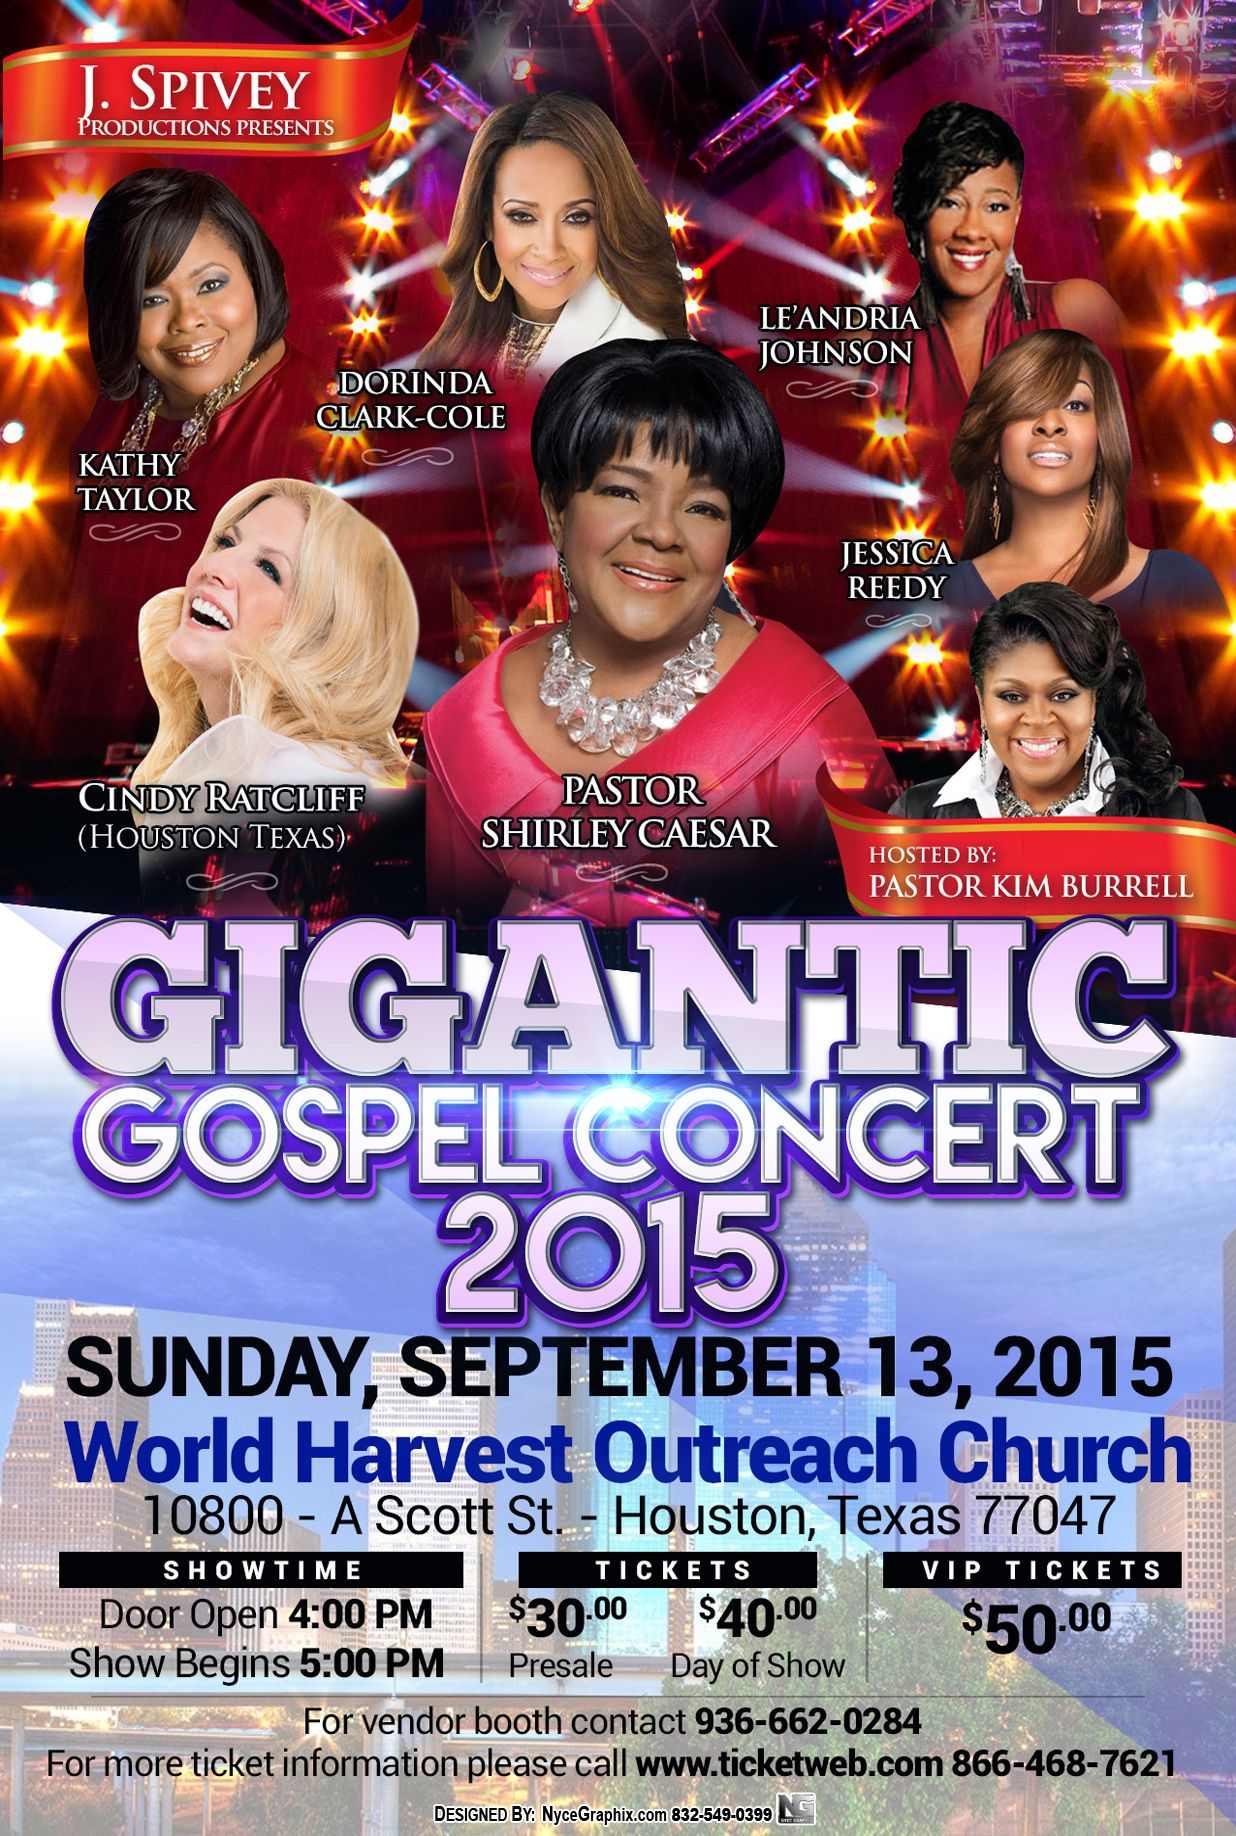 Tick tock....don't let the time get past you by. Get your tickets to the Gigantic Gospel Concert while tickets last. What an amazing lineup of women! An all female gospel lineup...a J. Spivey production. Two shows, one in Dallas (9/12/15) and one in Houston (9/13/15). www.ticketweb.com 866-468-7621